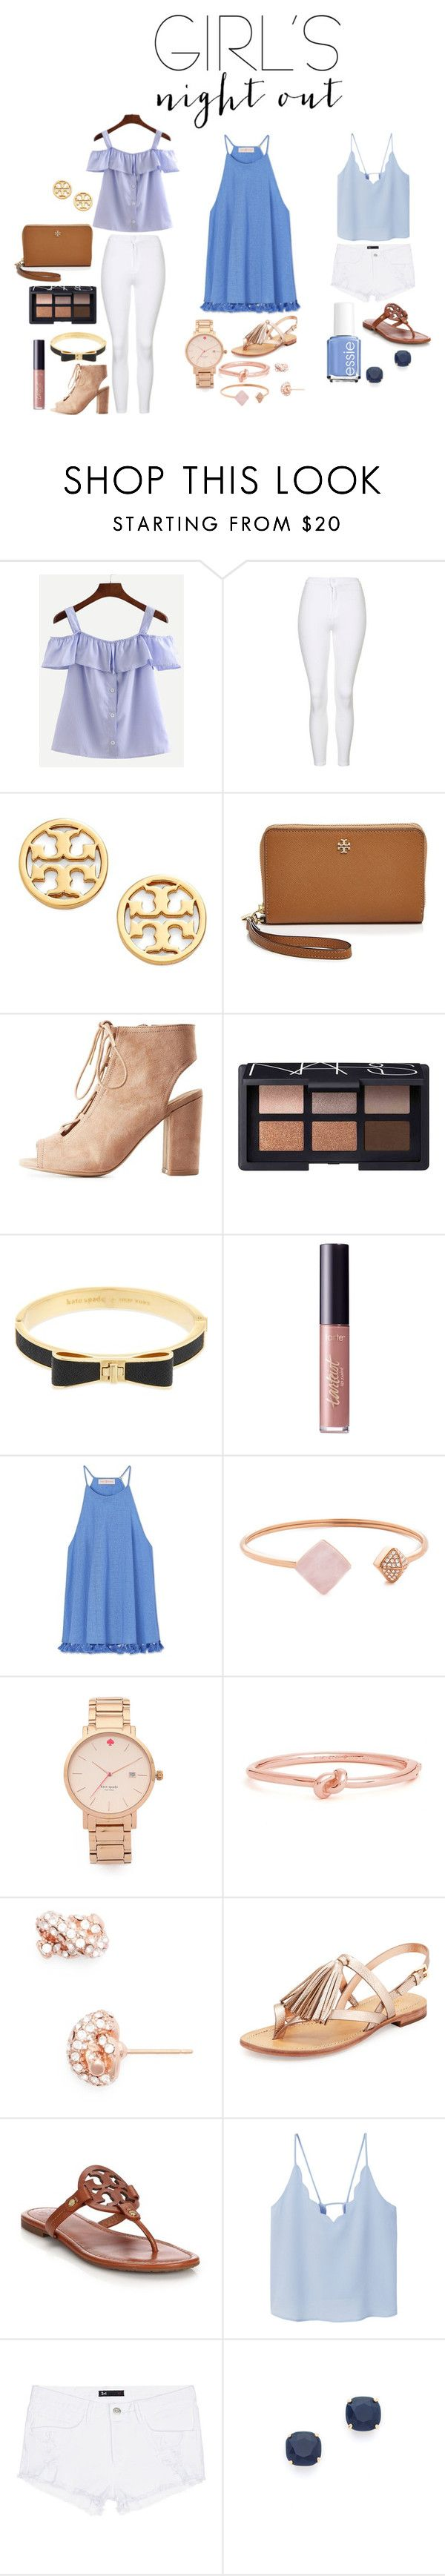 """GNO!!!"" by kkfischer ❤ liked on Polyvore featuring Topshop, Tory Burch, Qupid, NARS Cosmetics, Kate Spade, tarte, Michael Kors, MANGO, 3x1 and Essie"